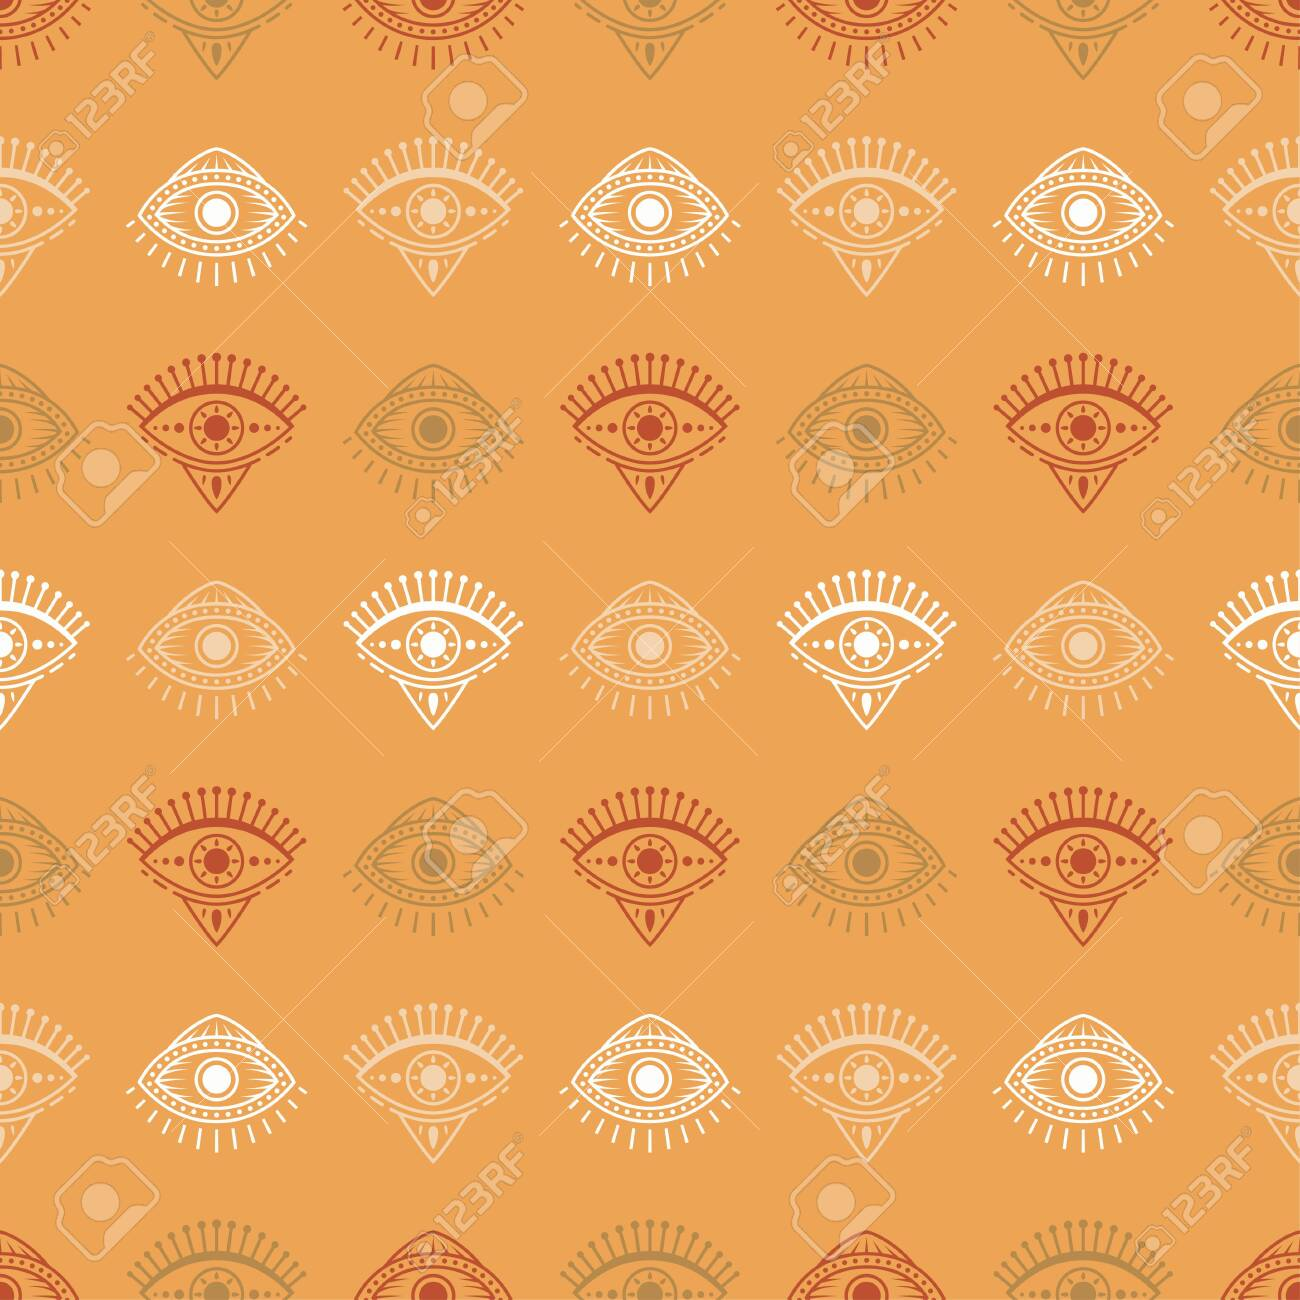 Seamless pattern with hand drawn eye, vector illustration - 150666989